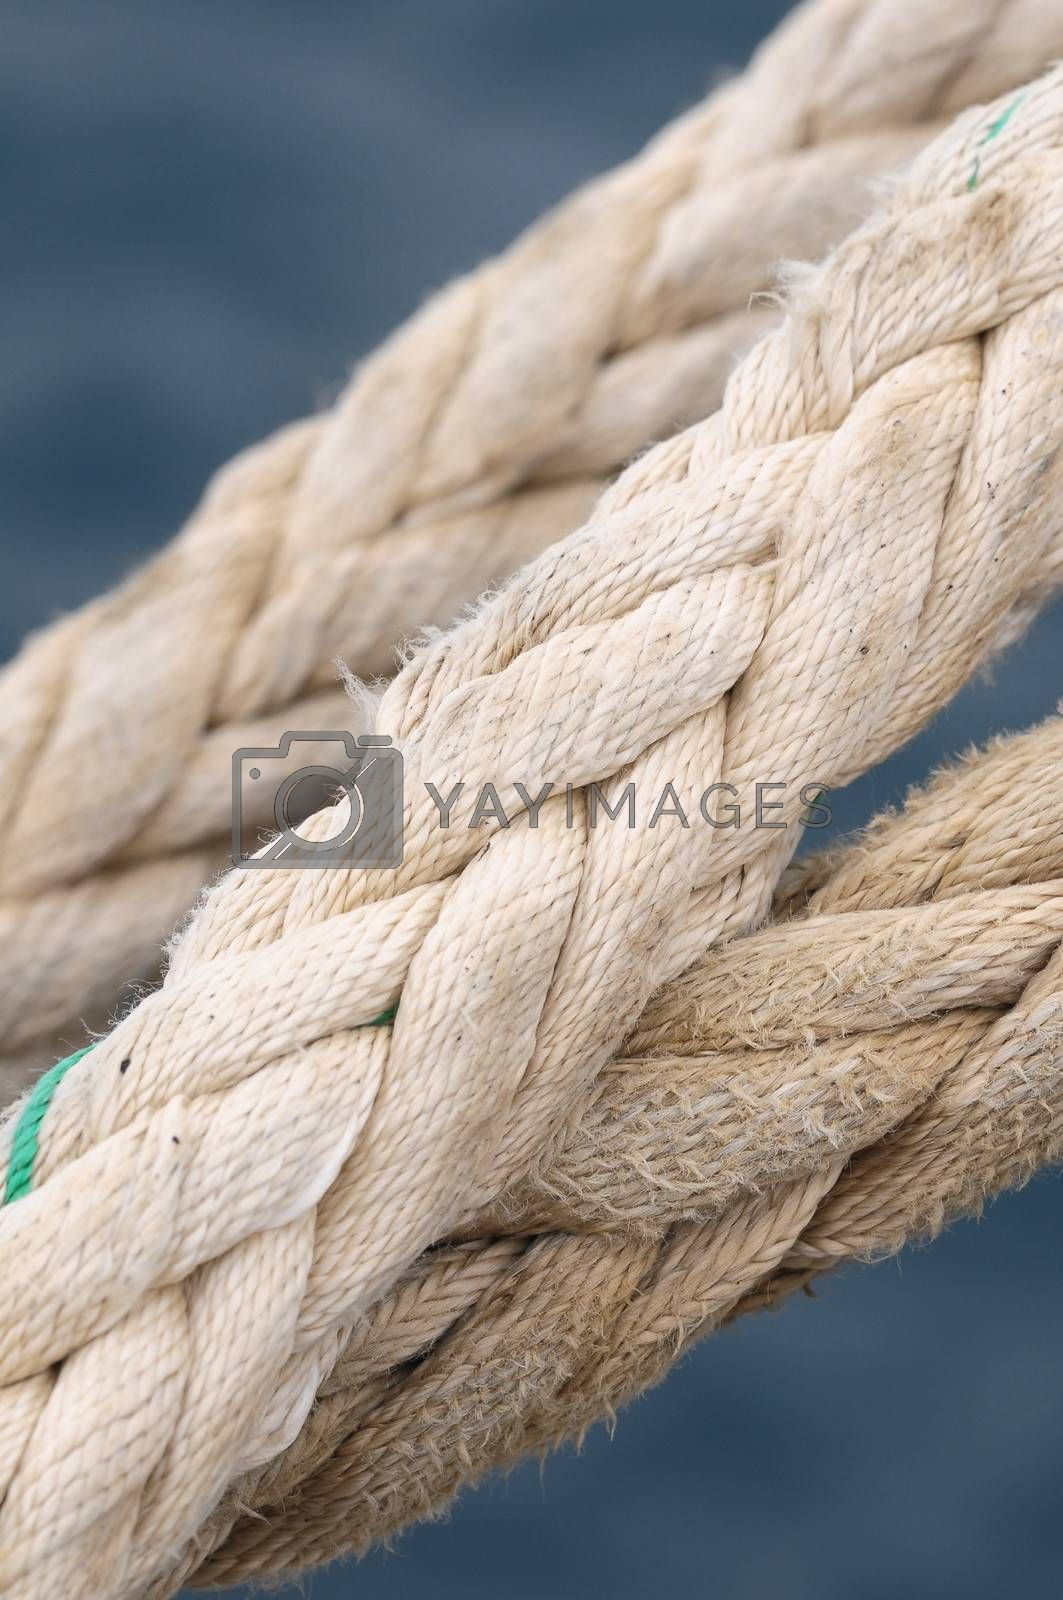 Naval Rope on a Pier, in Canary Islands, Spain